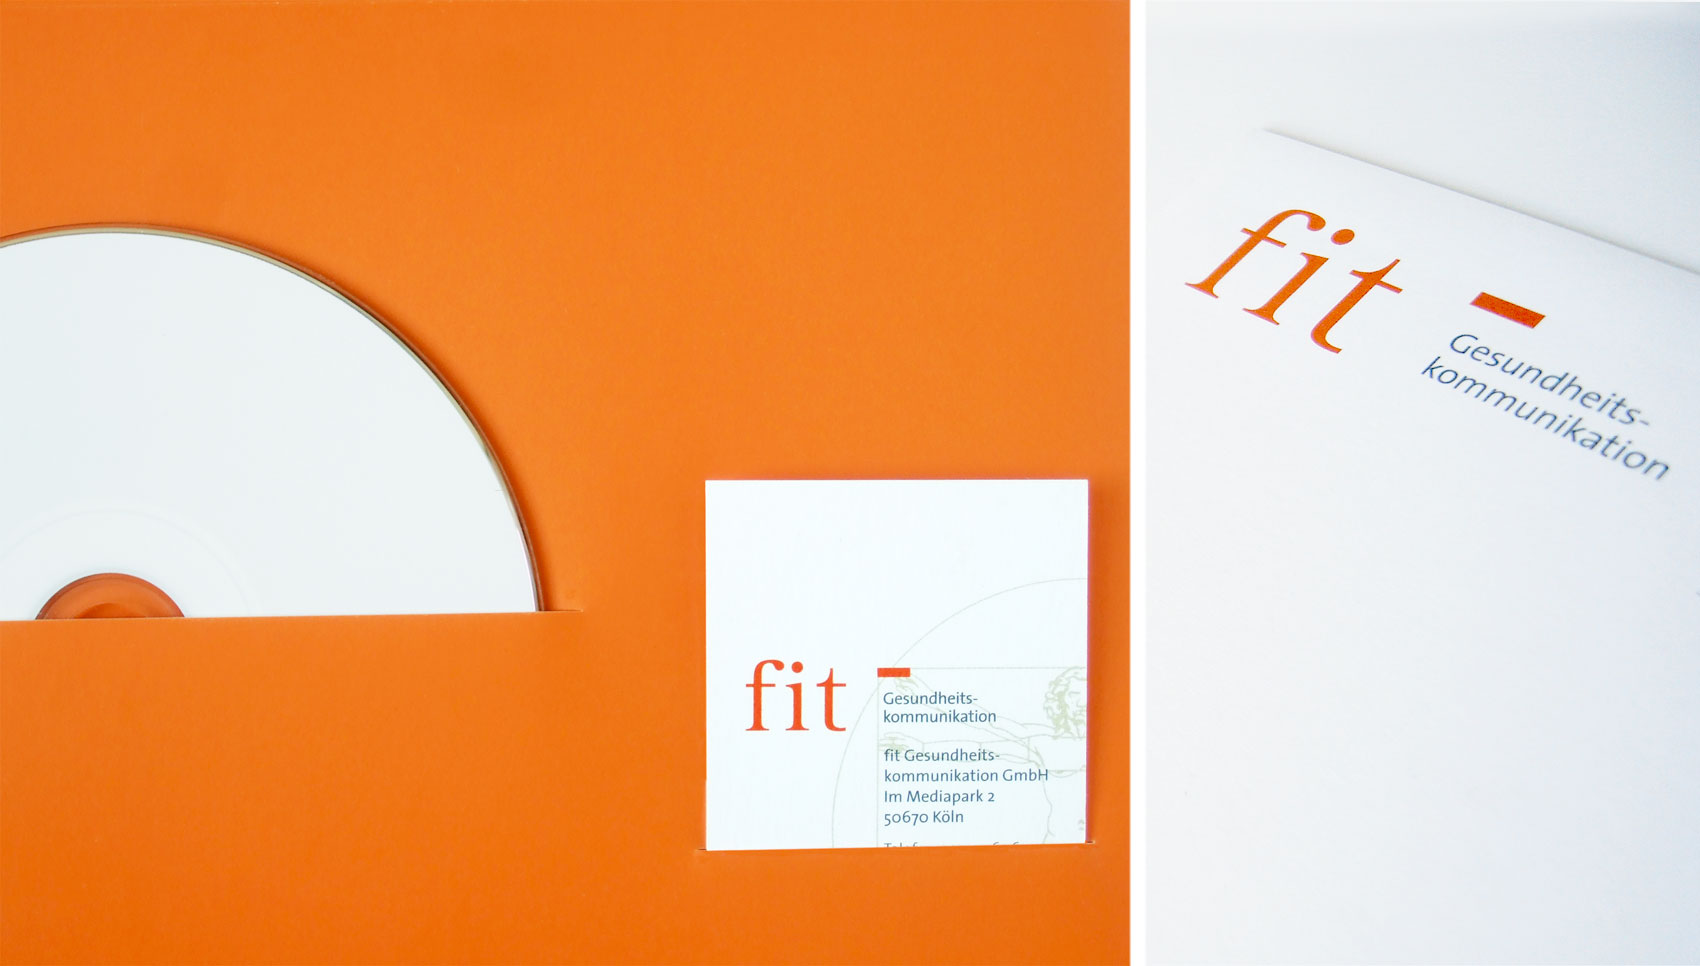 fit Gesundheitskommunikation Corporate Design